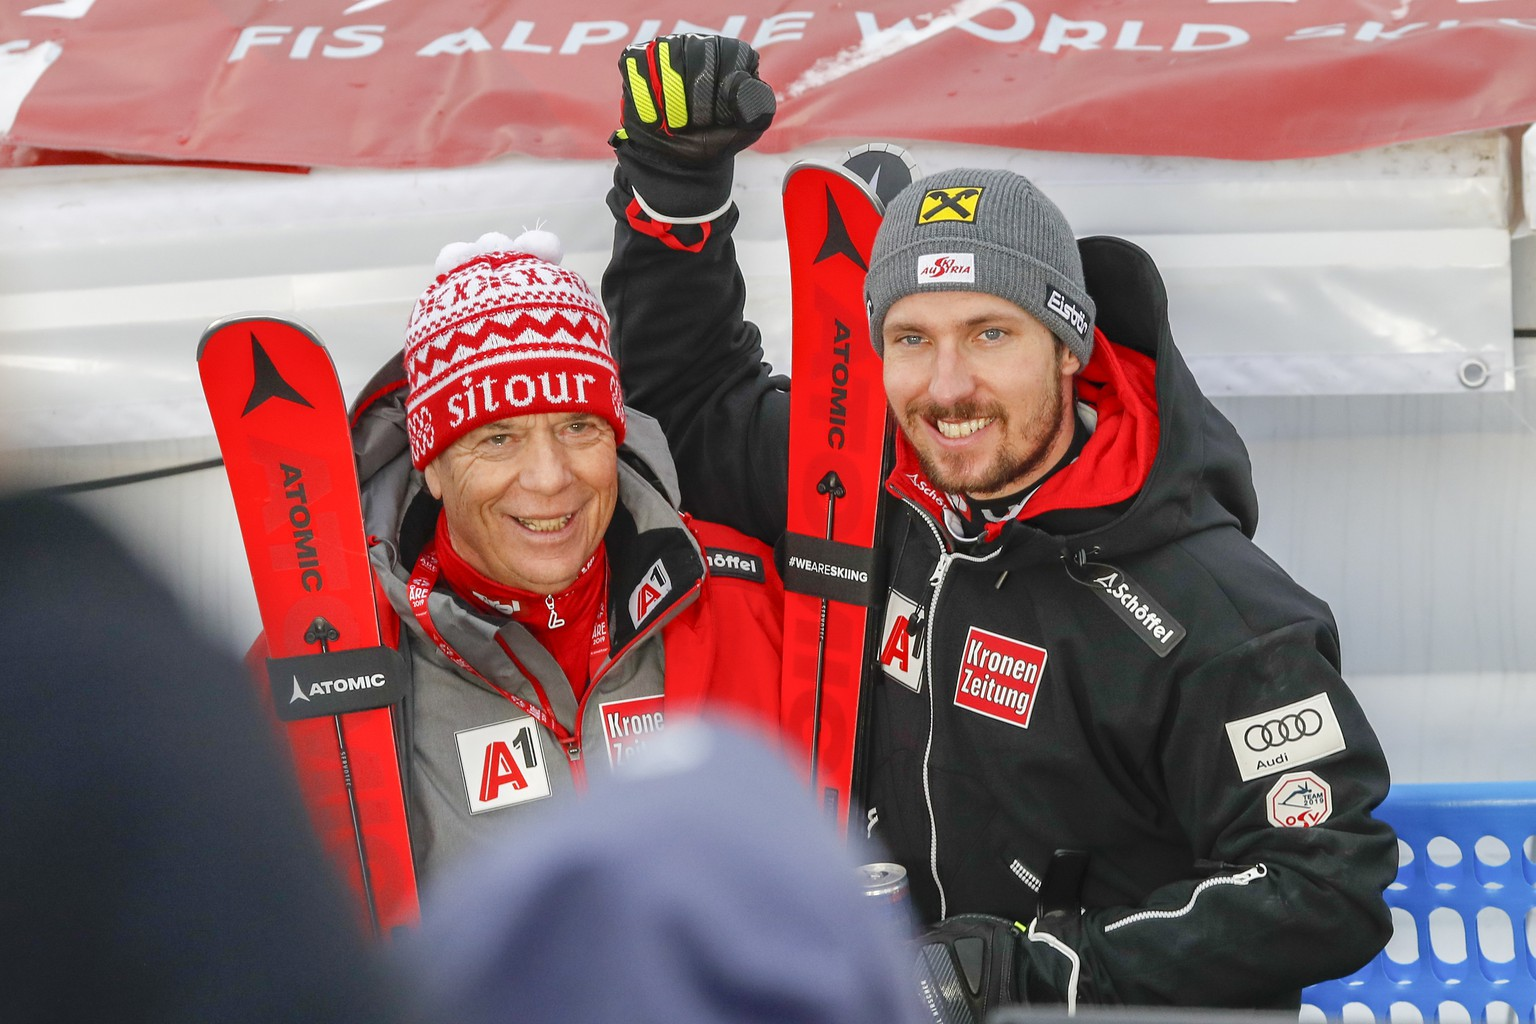 epa07377315 Marcel Hirscher of Austria (R) celebrates with Peter Schroecksnadel, President of the Austrian Ski Federation, after winning the Men's Slalom race at the 2019 FIS Alpine Skiing World Championships in Are, Sweden, 17 February 2019.  EPA/CHRISTIAN BRUNA